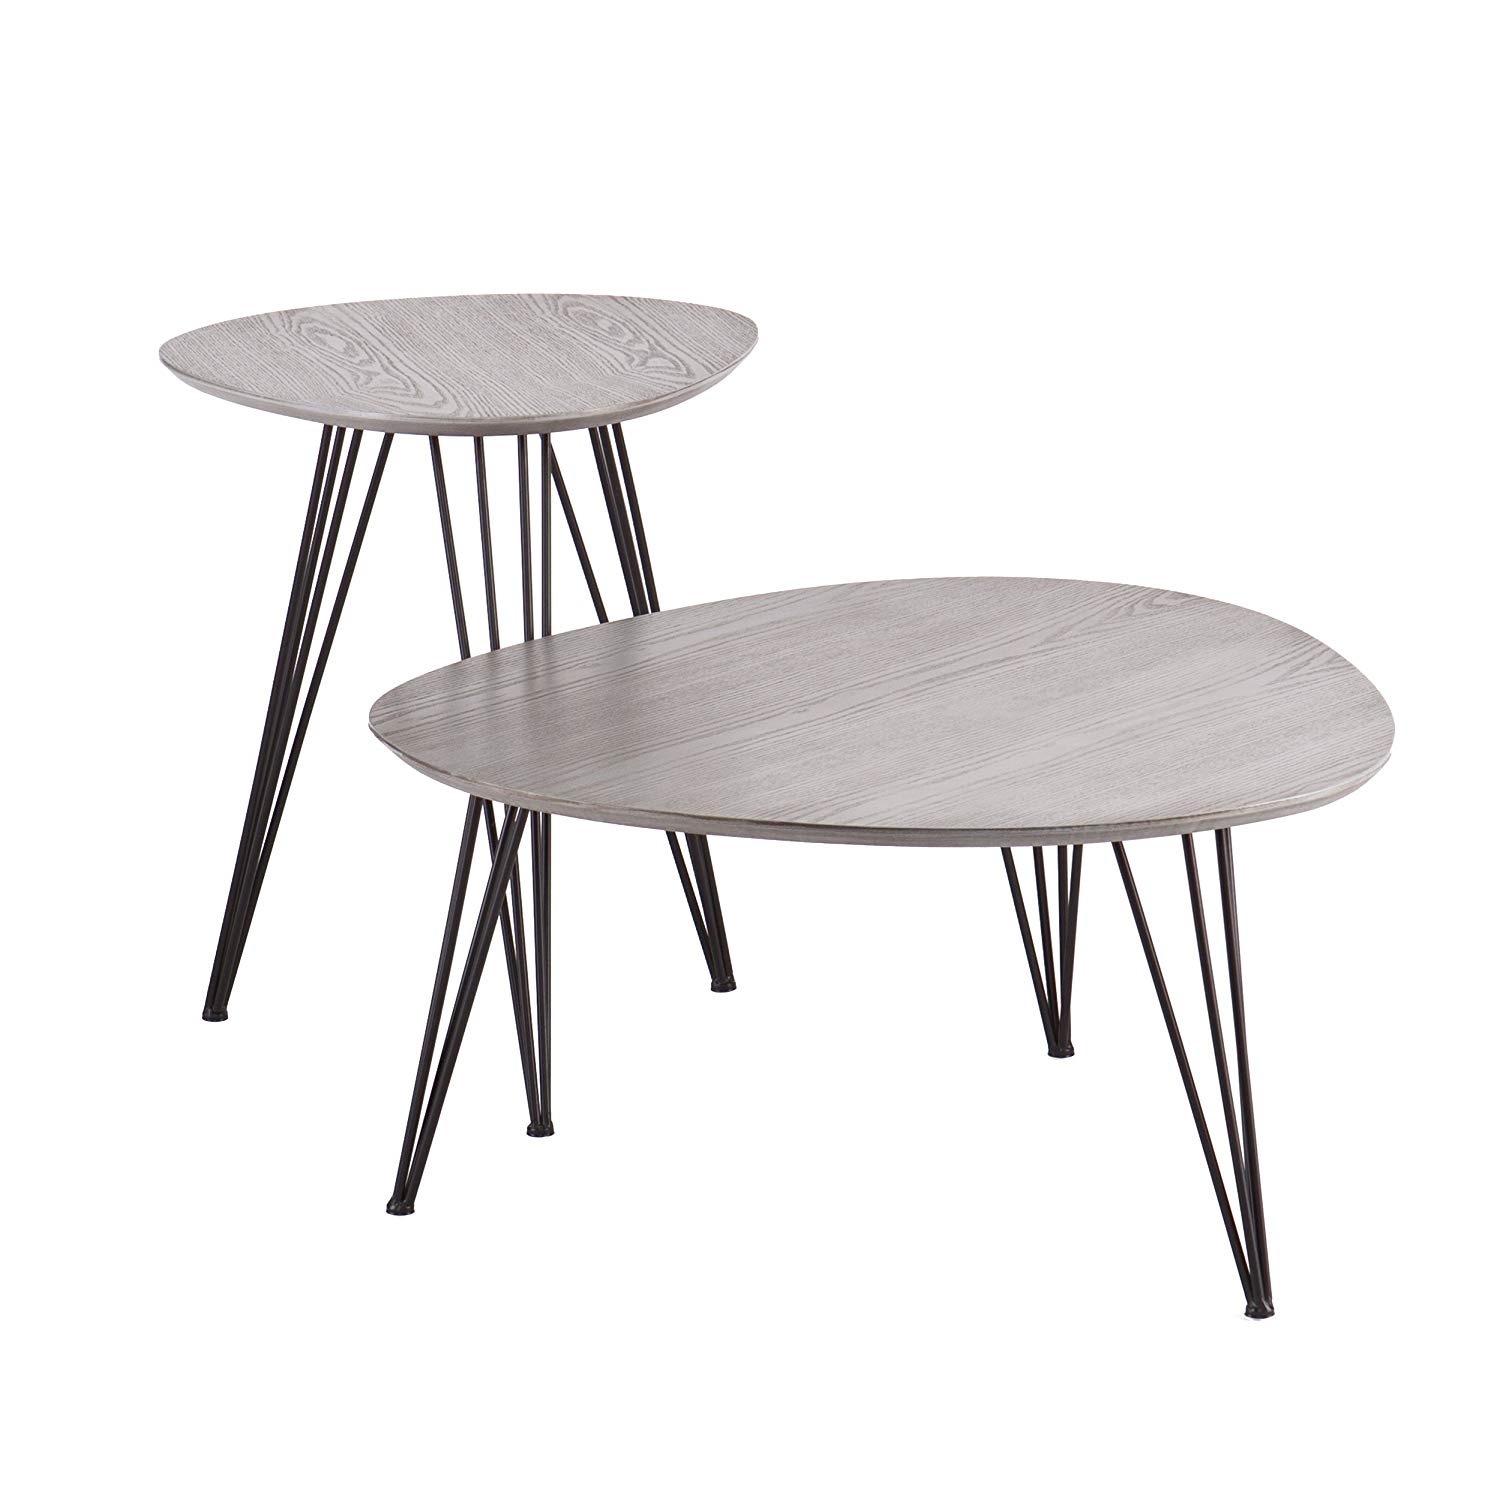 holly martin bannock accent table set matte gray room essentials instructions with black finish kitchen dining ashley furniture leather recliners night stands ikea pier beds pool